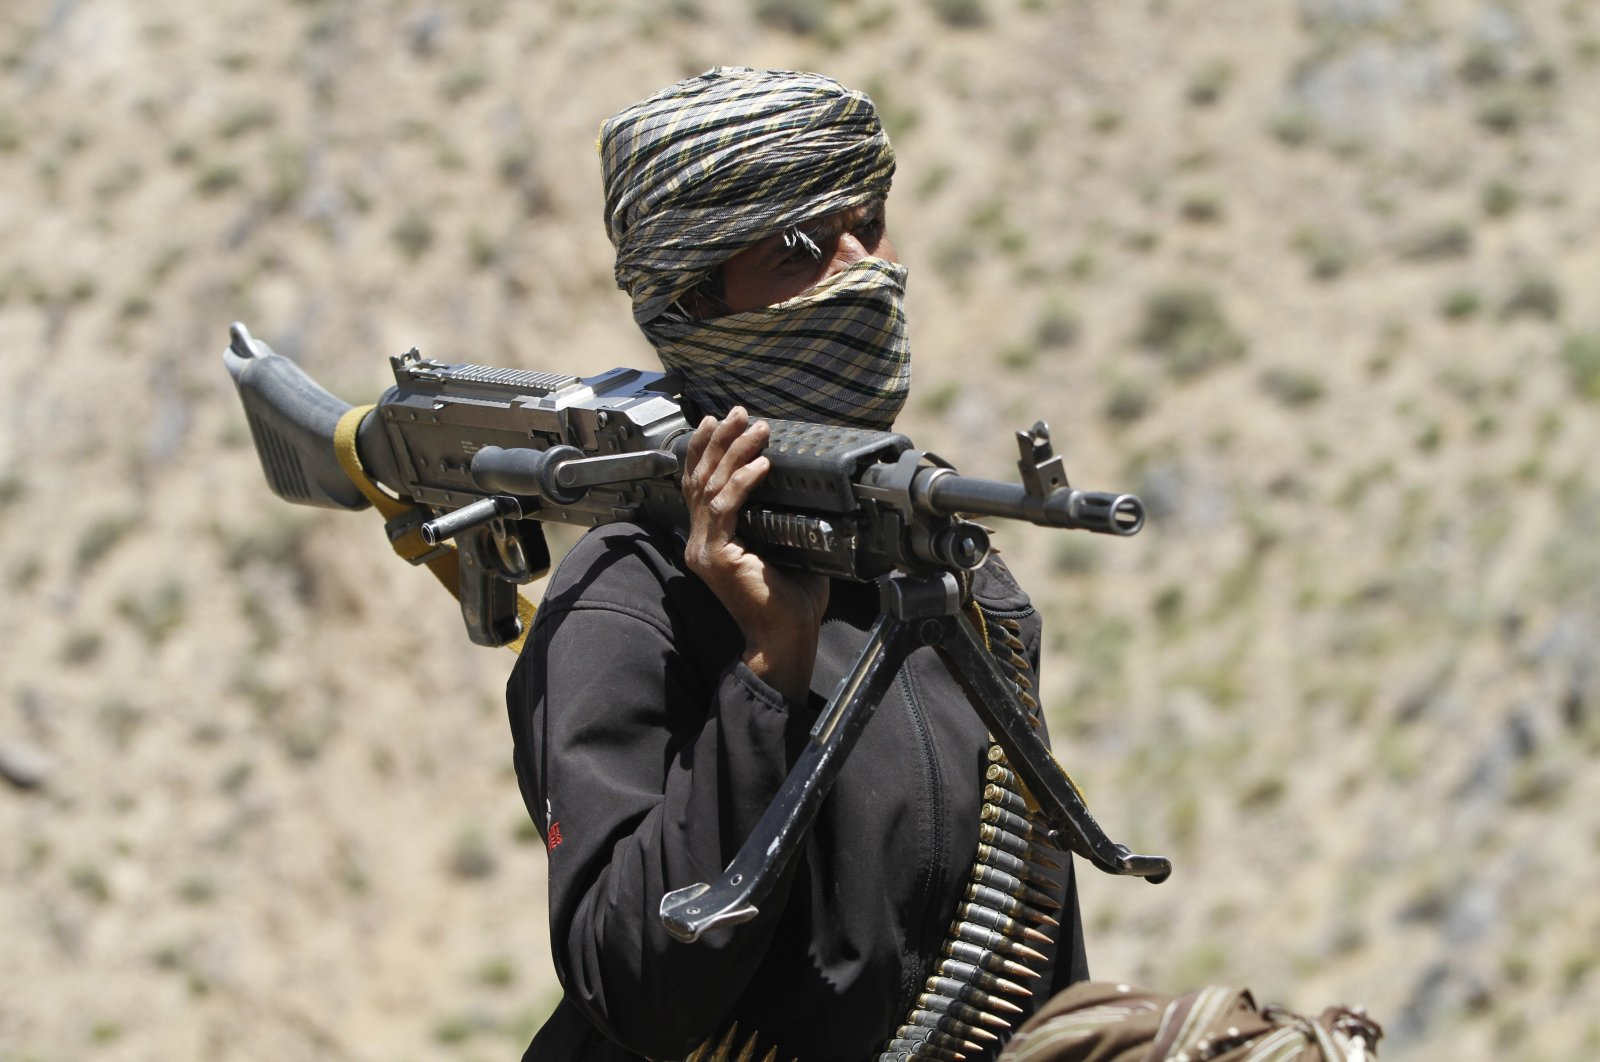 In this May 27, 2016 file photo, a member of a breakaway faction of the Taliban fighters guards a gathering in Shindand district of Herat province, Afghanistan. (AP File Photo)